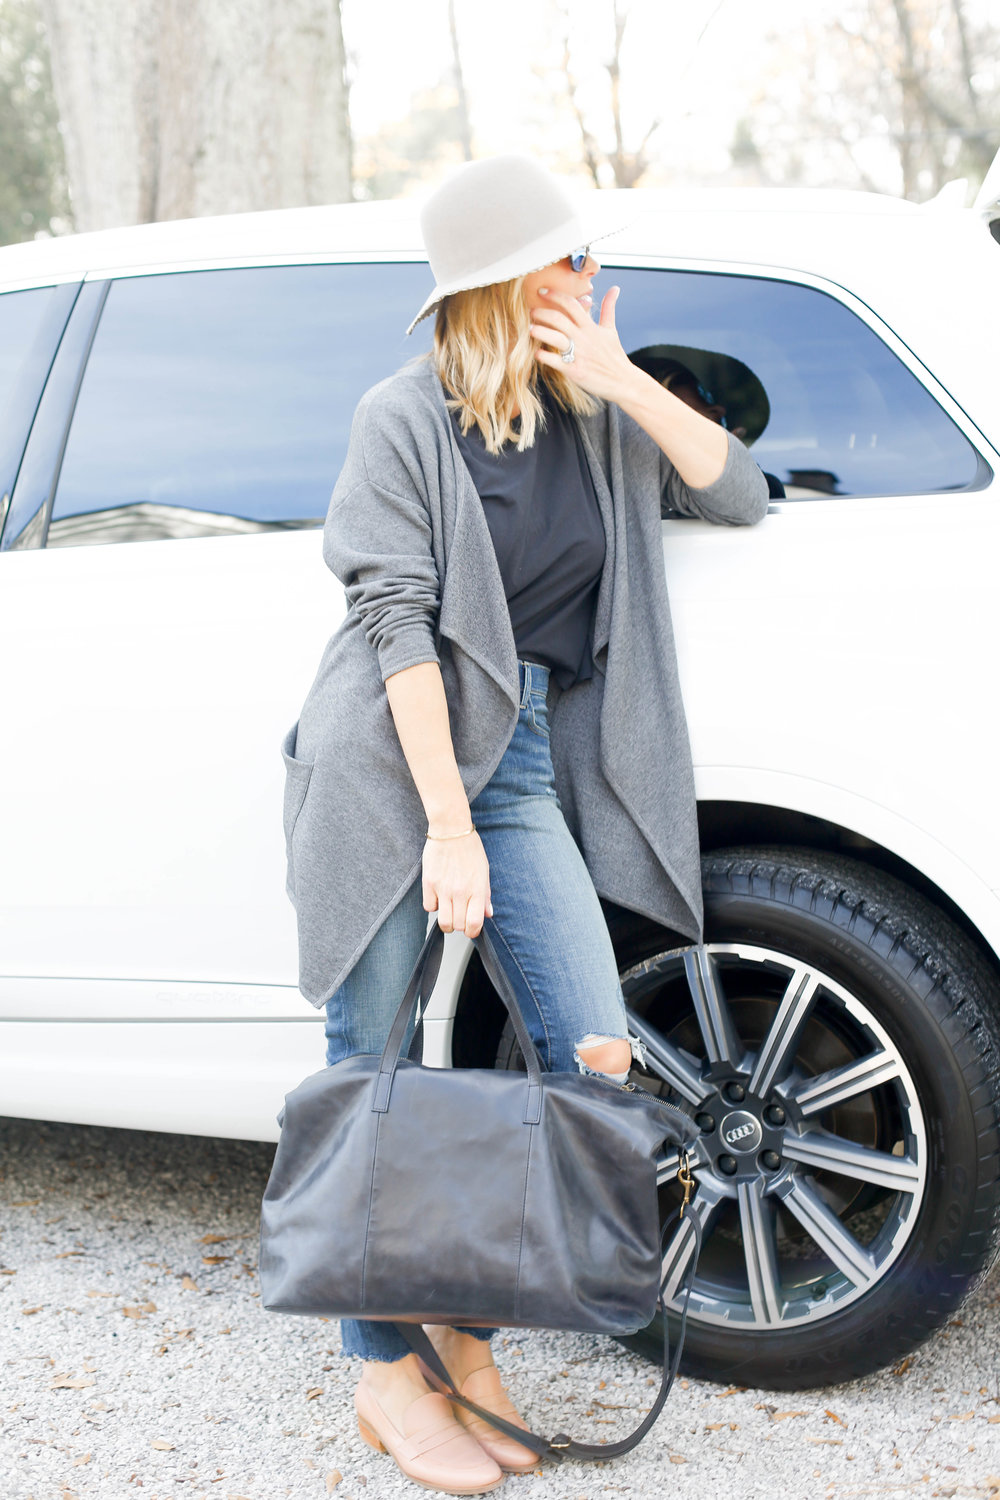 leaning up against car with bag.jpg